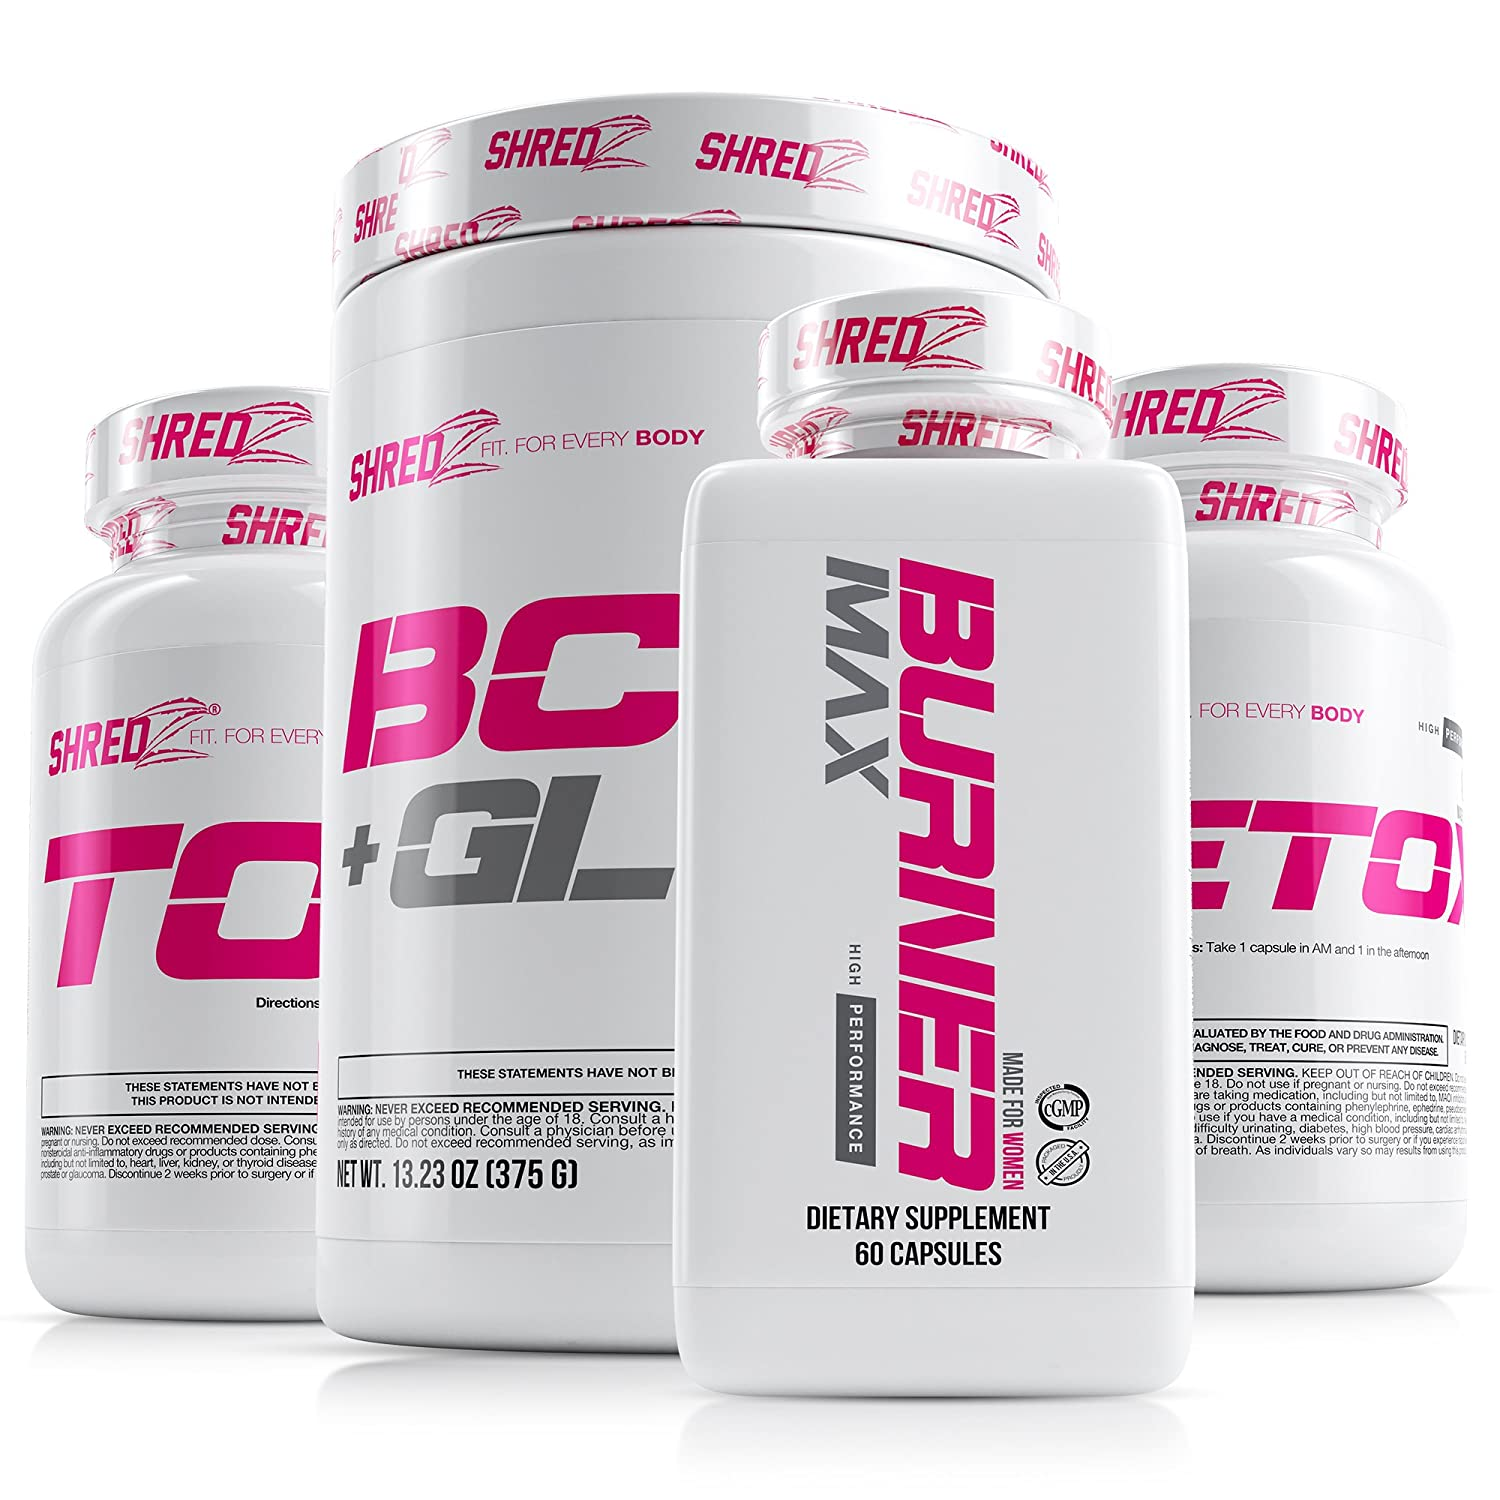 Shredz 30 Day Weight Loss Results Supplements Stack For Women Clinically Tested Ingredients Burner